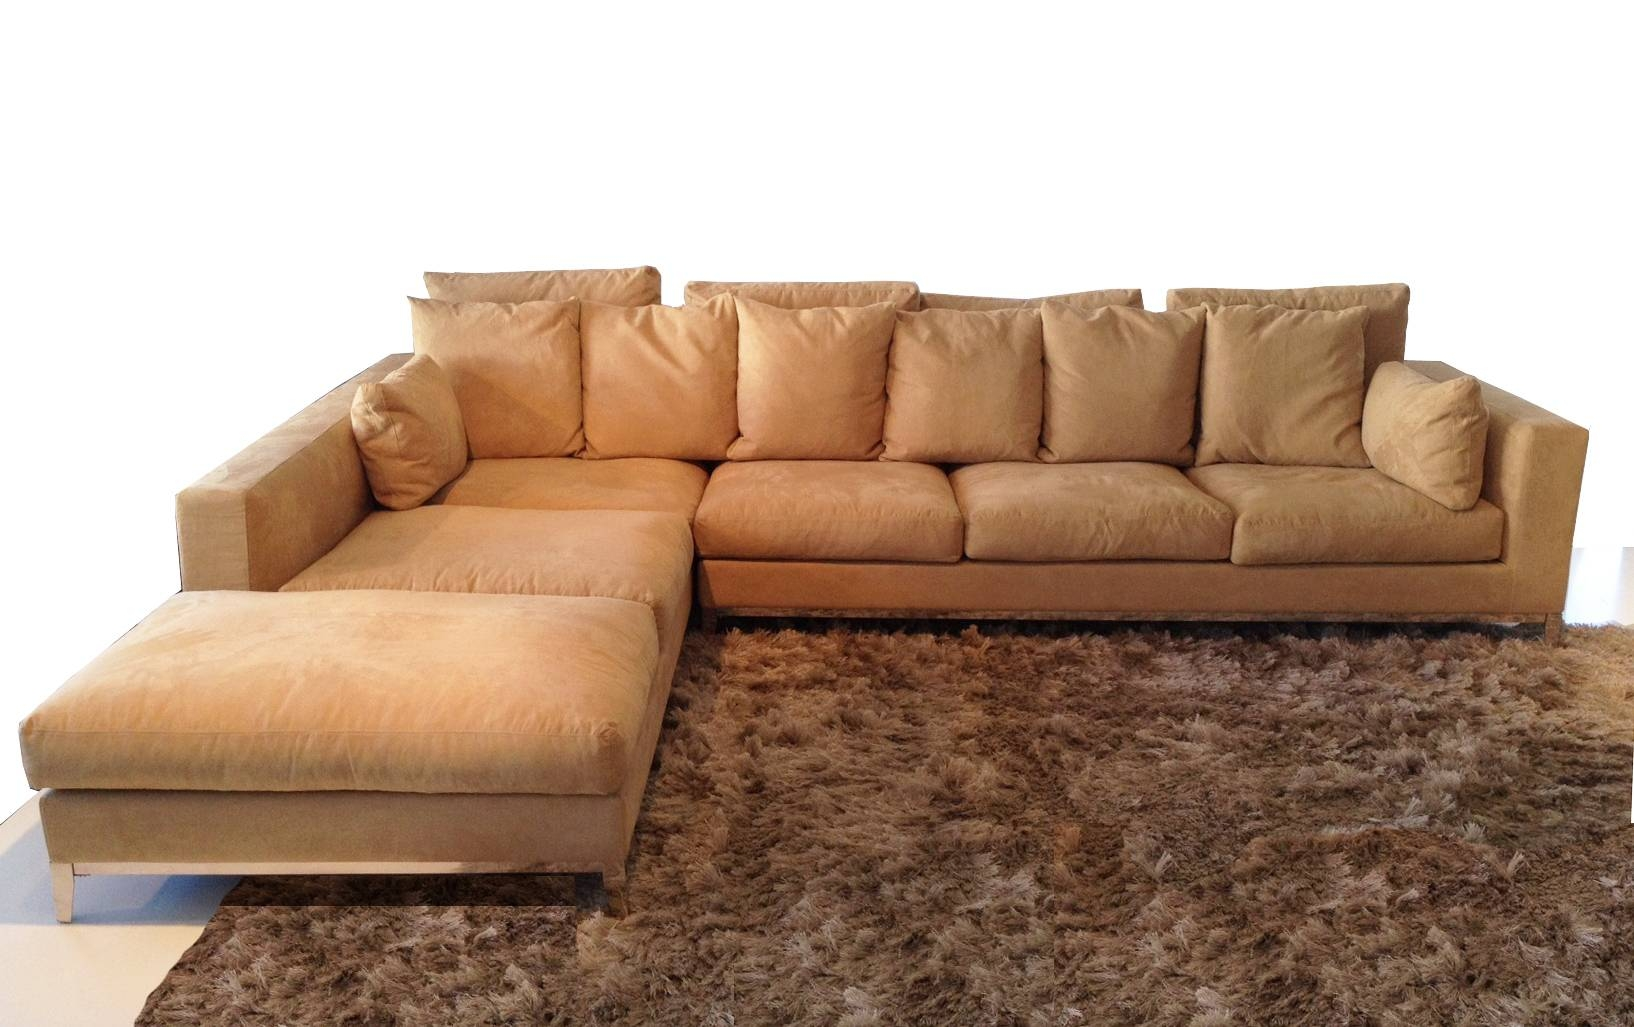 Cool Huge Sectional Sofas 69 On Bentley Sectional Leather Sofa within Bentley Sectional Leather Sofa (Image 17 of 30)